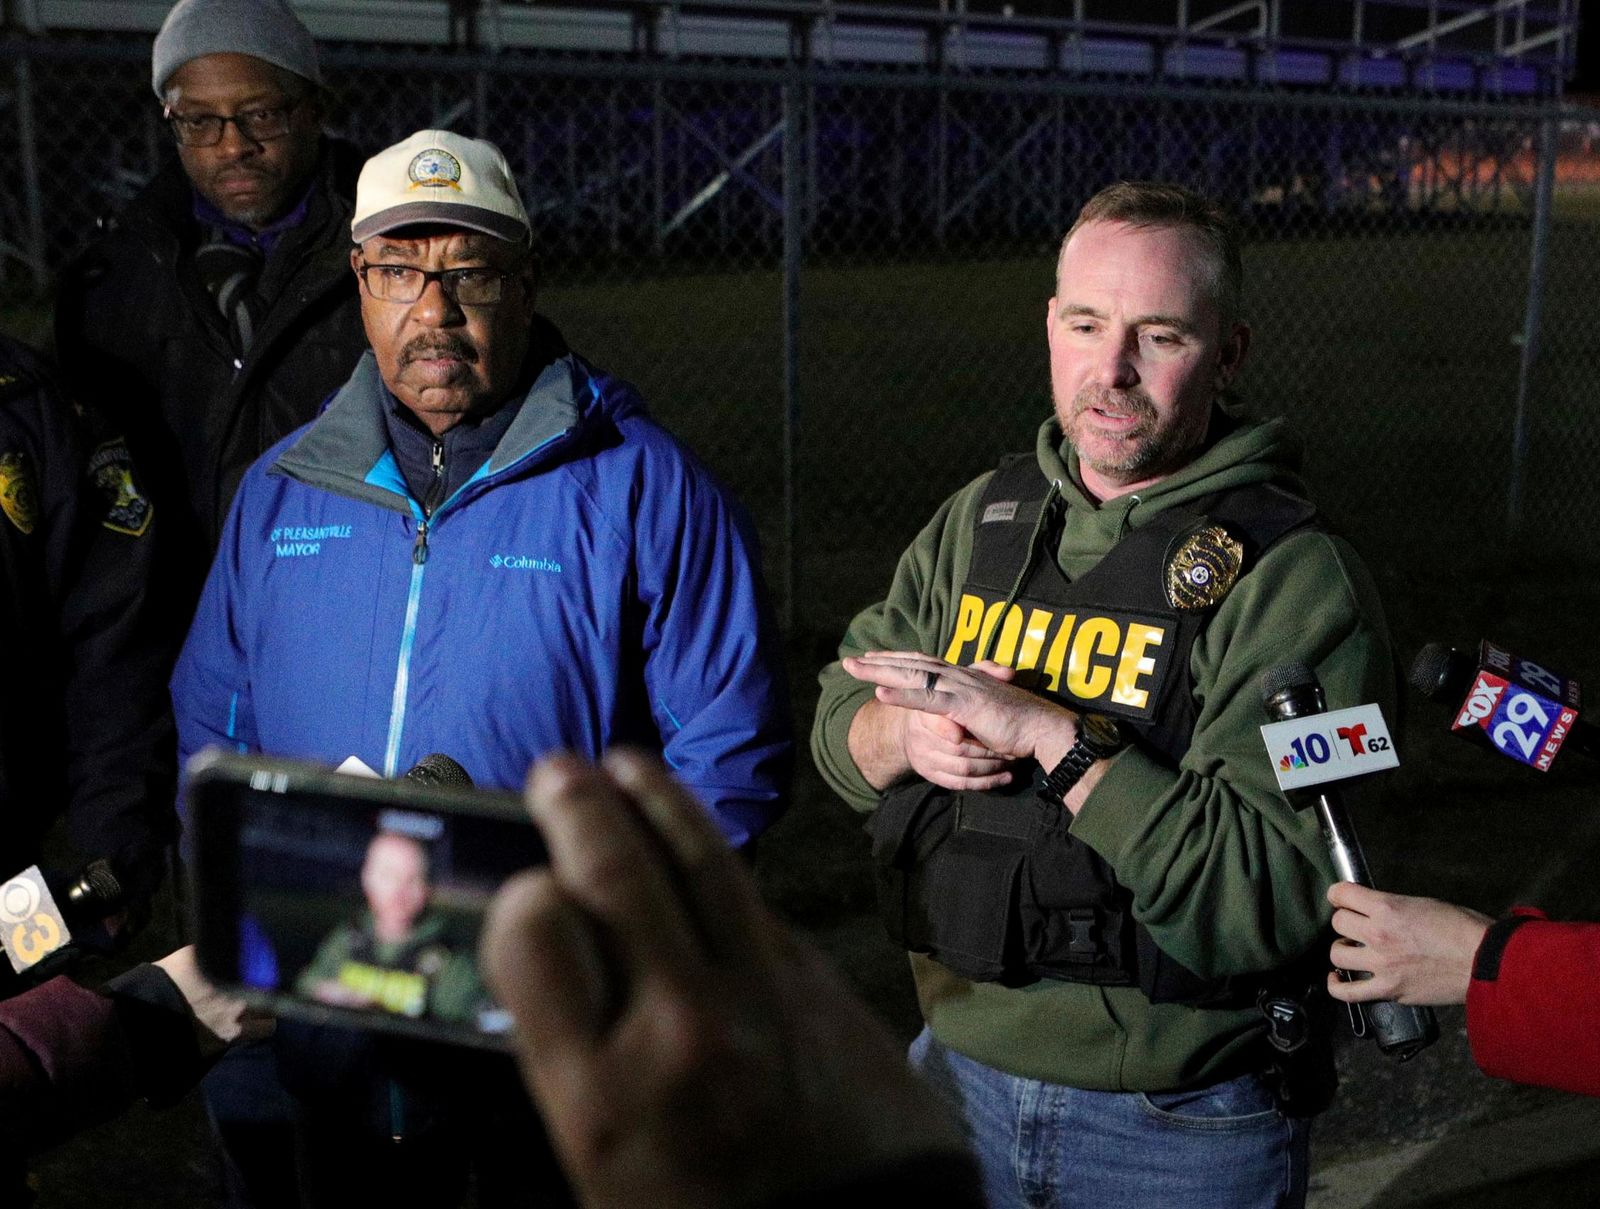 Pleasantville Mayor Jesse L. Tweedle Sr., left and Pleasantville Police Chief Sean Riggin hold a news conference after a shooting that occurred during a football game at Pleasantville High School in Pleasantville, N.J., Friday, Nov. 15, 2019. Players and spectators ran for cover Friday night when a gunman opened fire at the New Jersey high school football game. (Edward Lea/The Press of Atlantic City via AP)